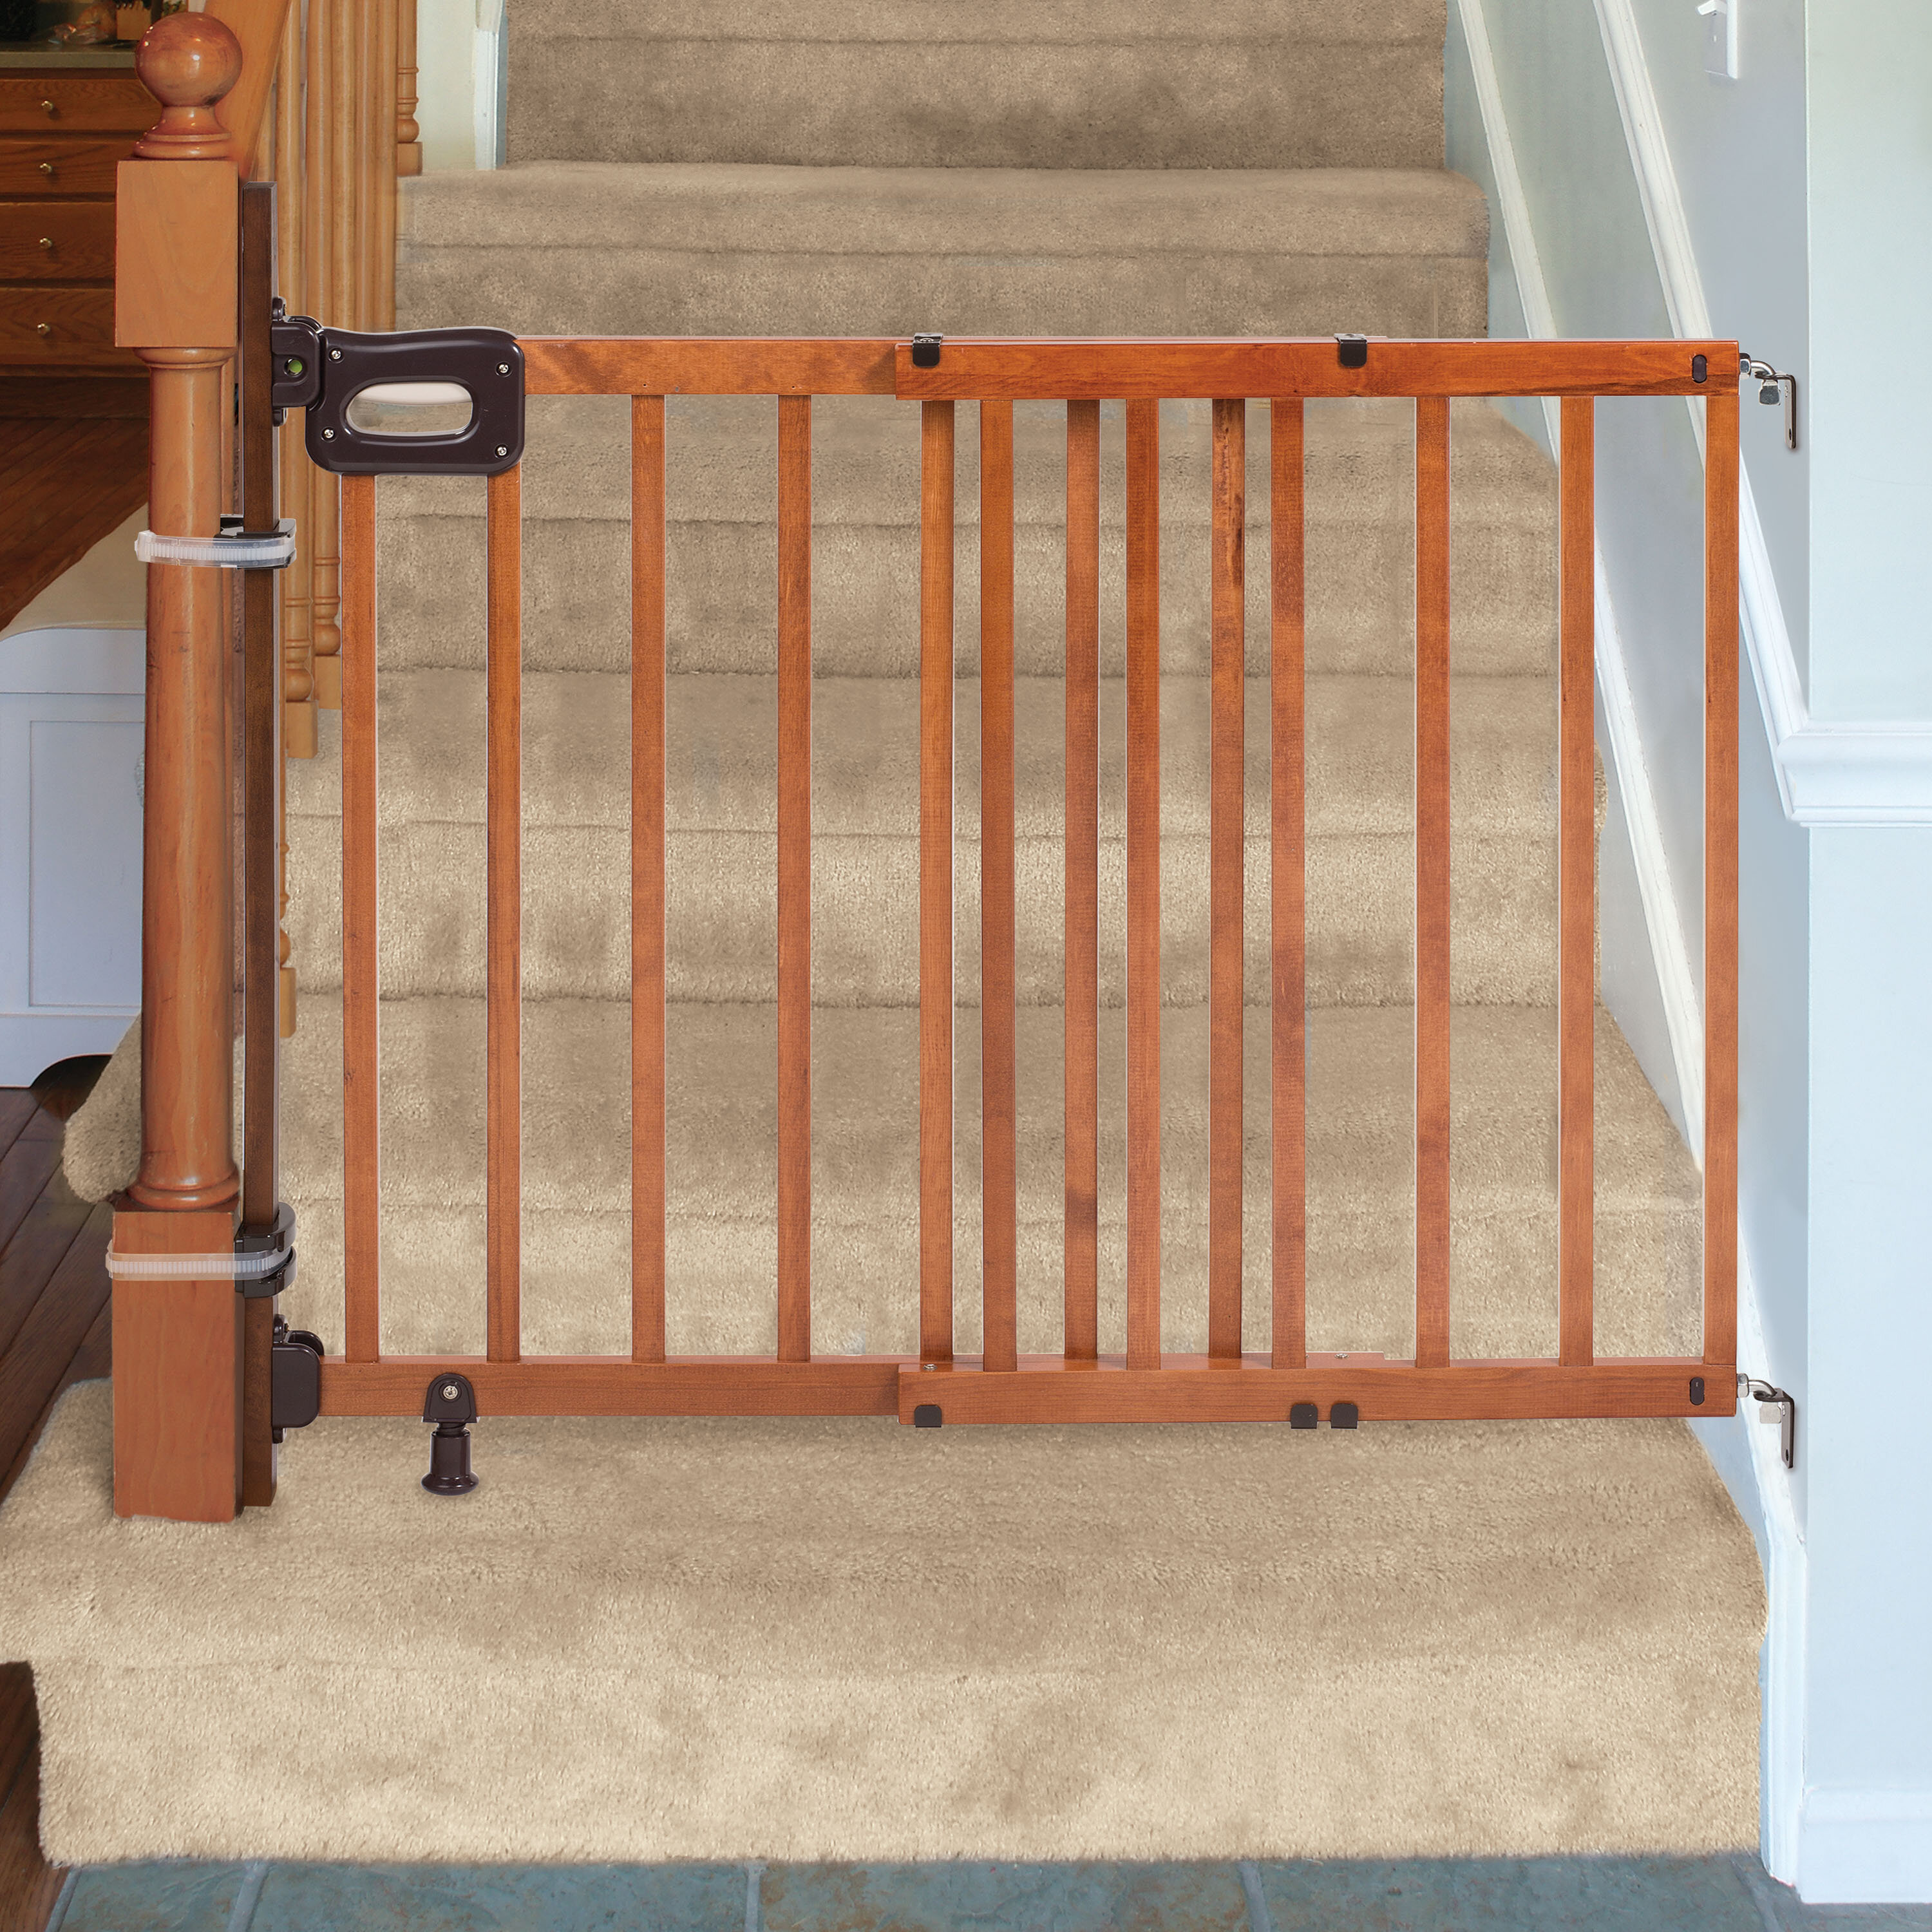 Summer Infant Banister To Banister Universal Kit U0026 Reviews | Wayfair